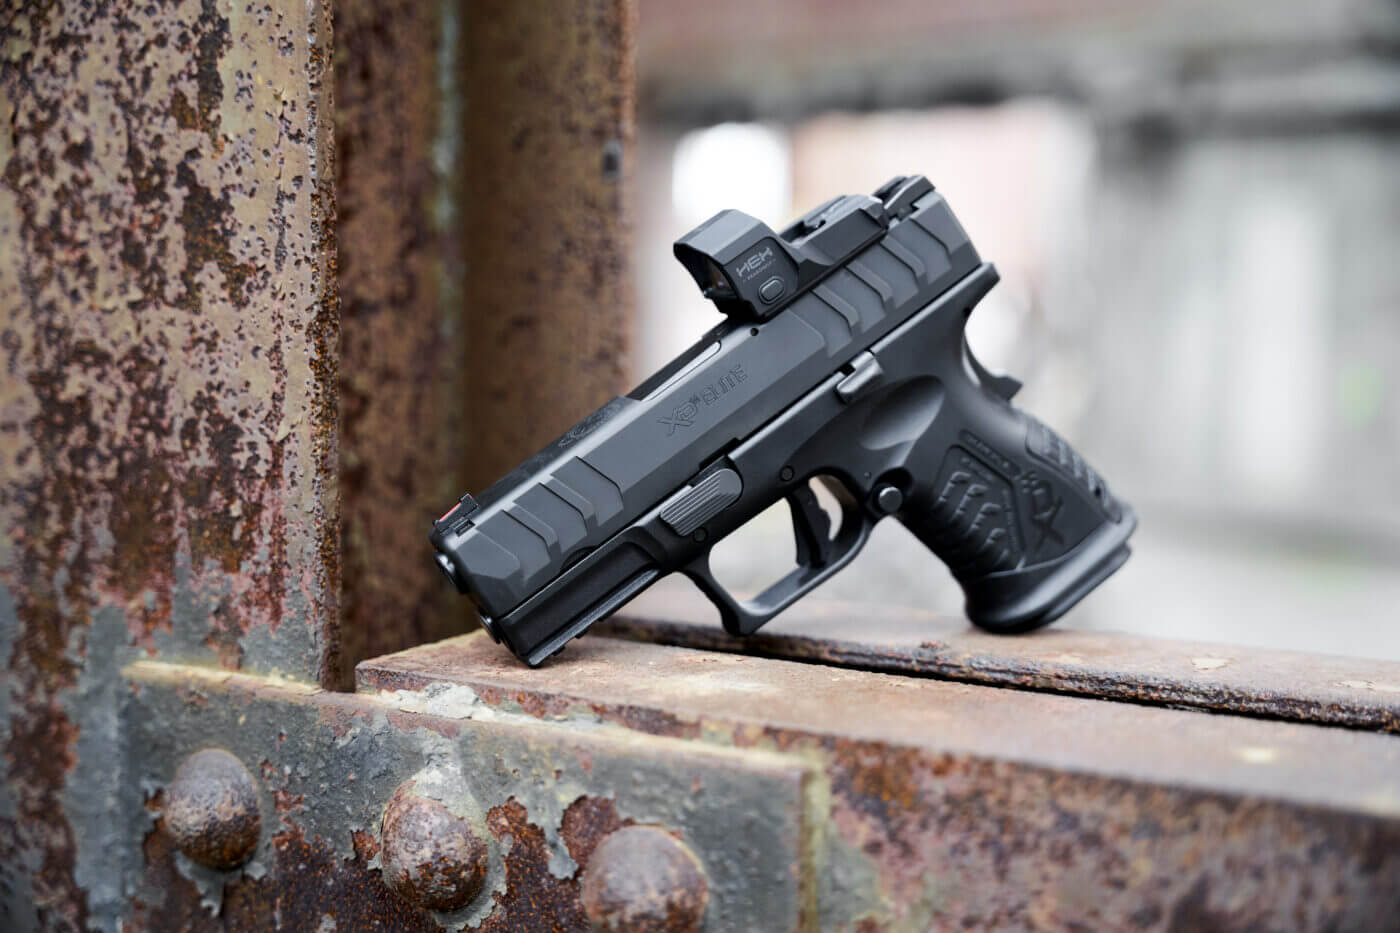 HEX Dragonfly mounted on XD-M Elite Compact pistol